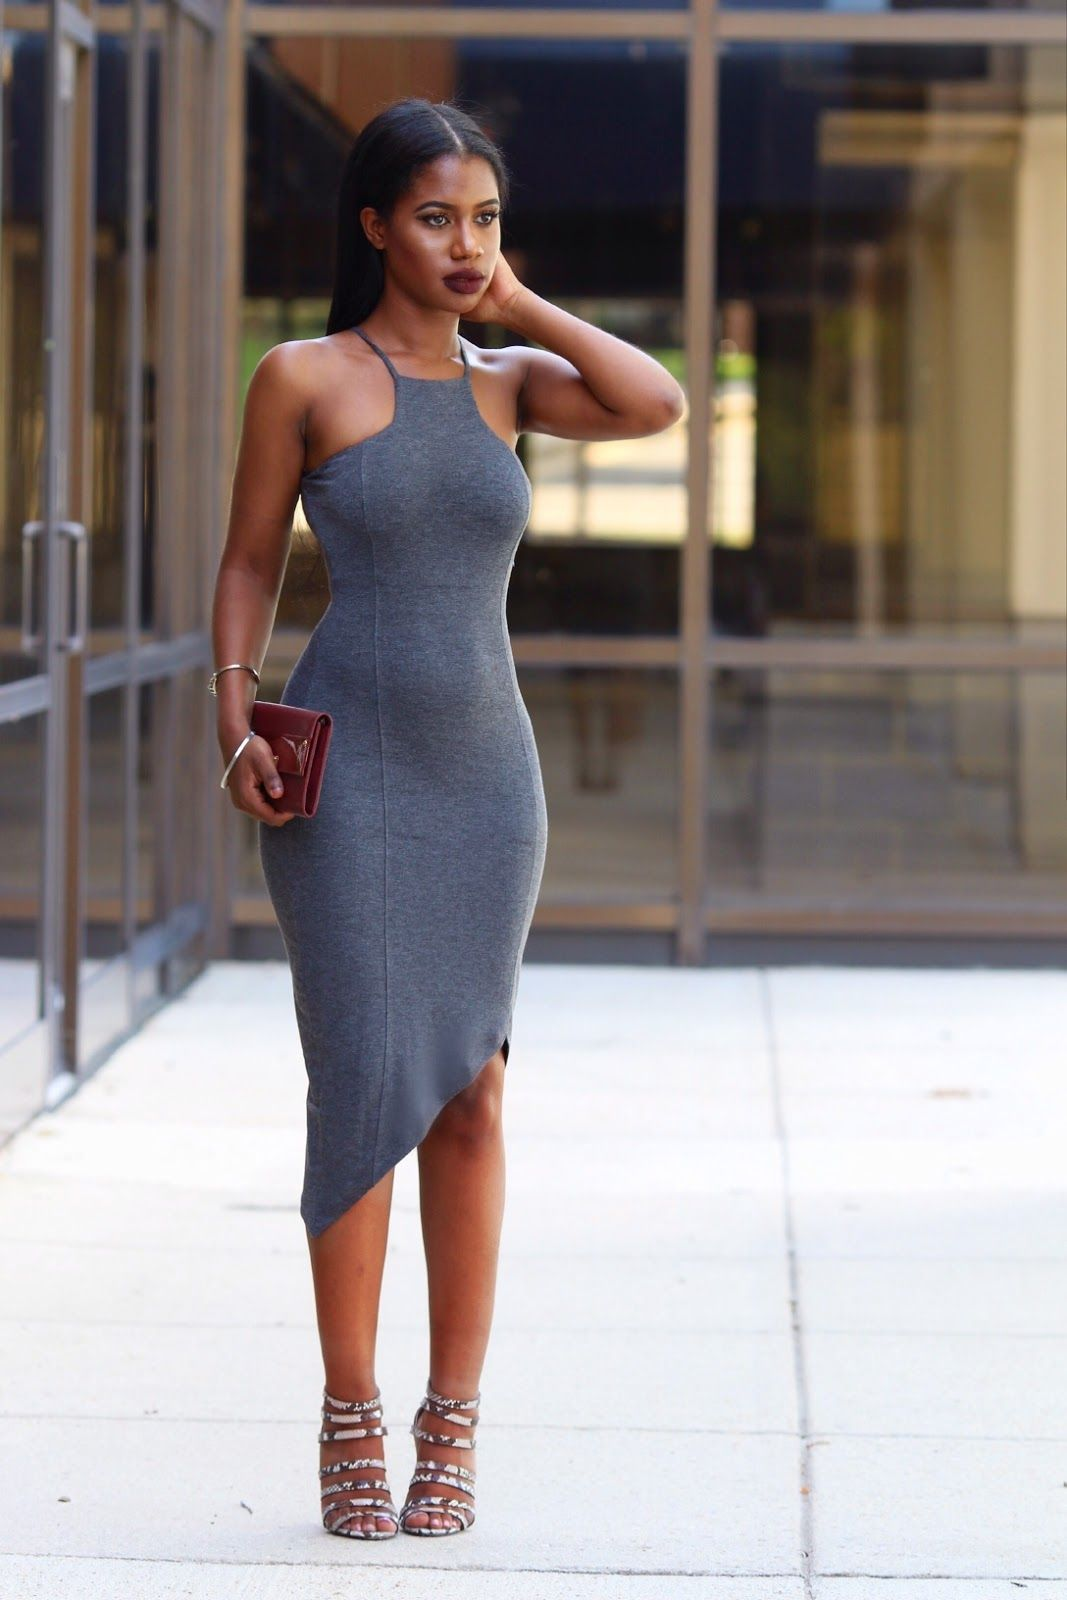 Black dress in summer - Summer Style Street Style Black Girl Bodycon Dress Minimalist Outfit Black